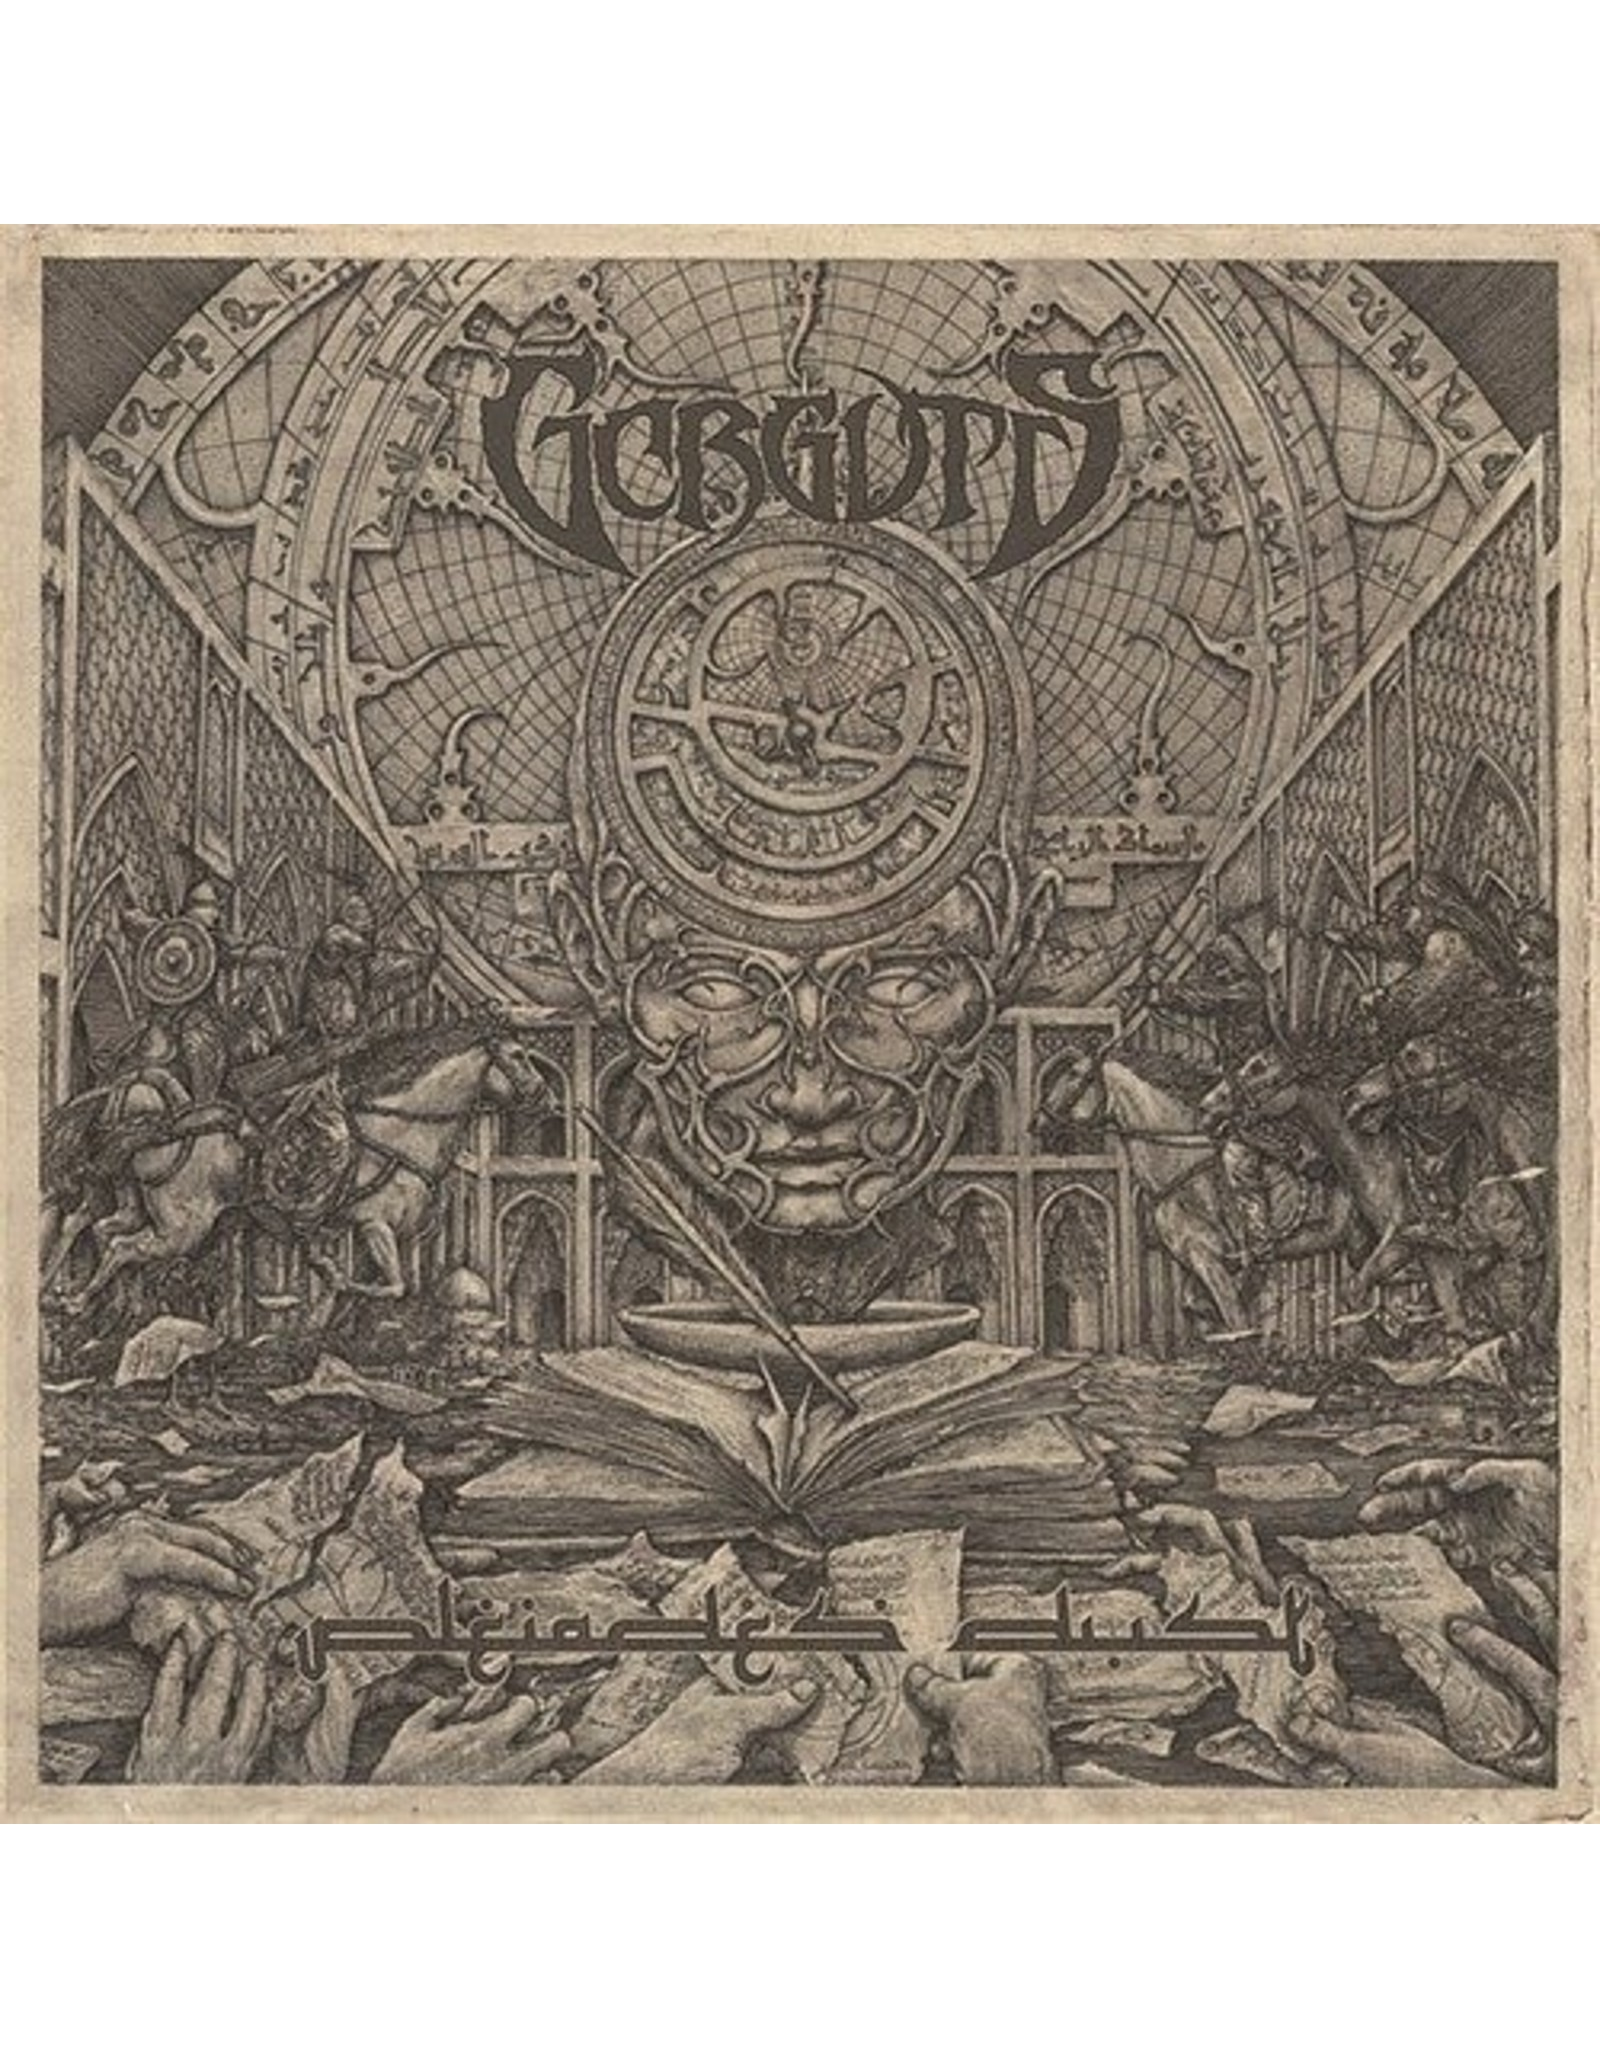 New Vinyl Gorguts - Pleiades' Dust LP